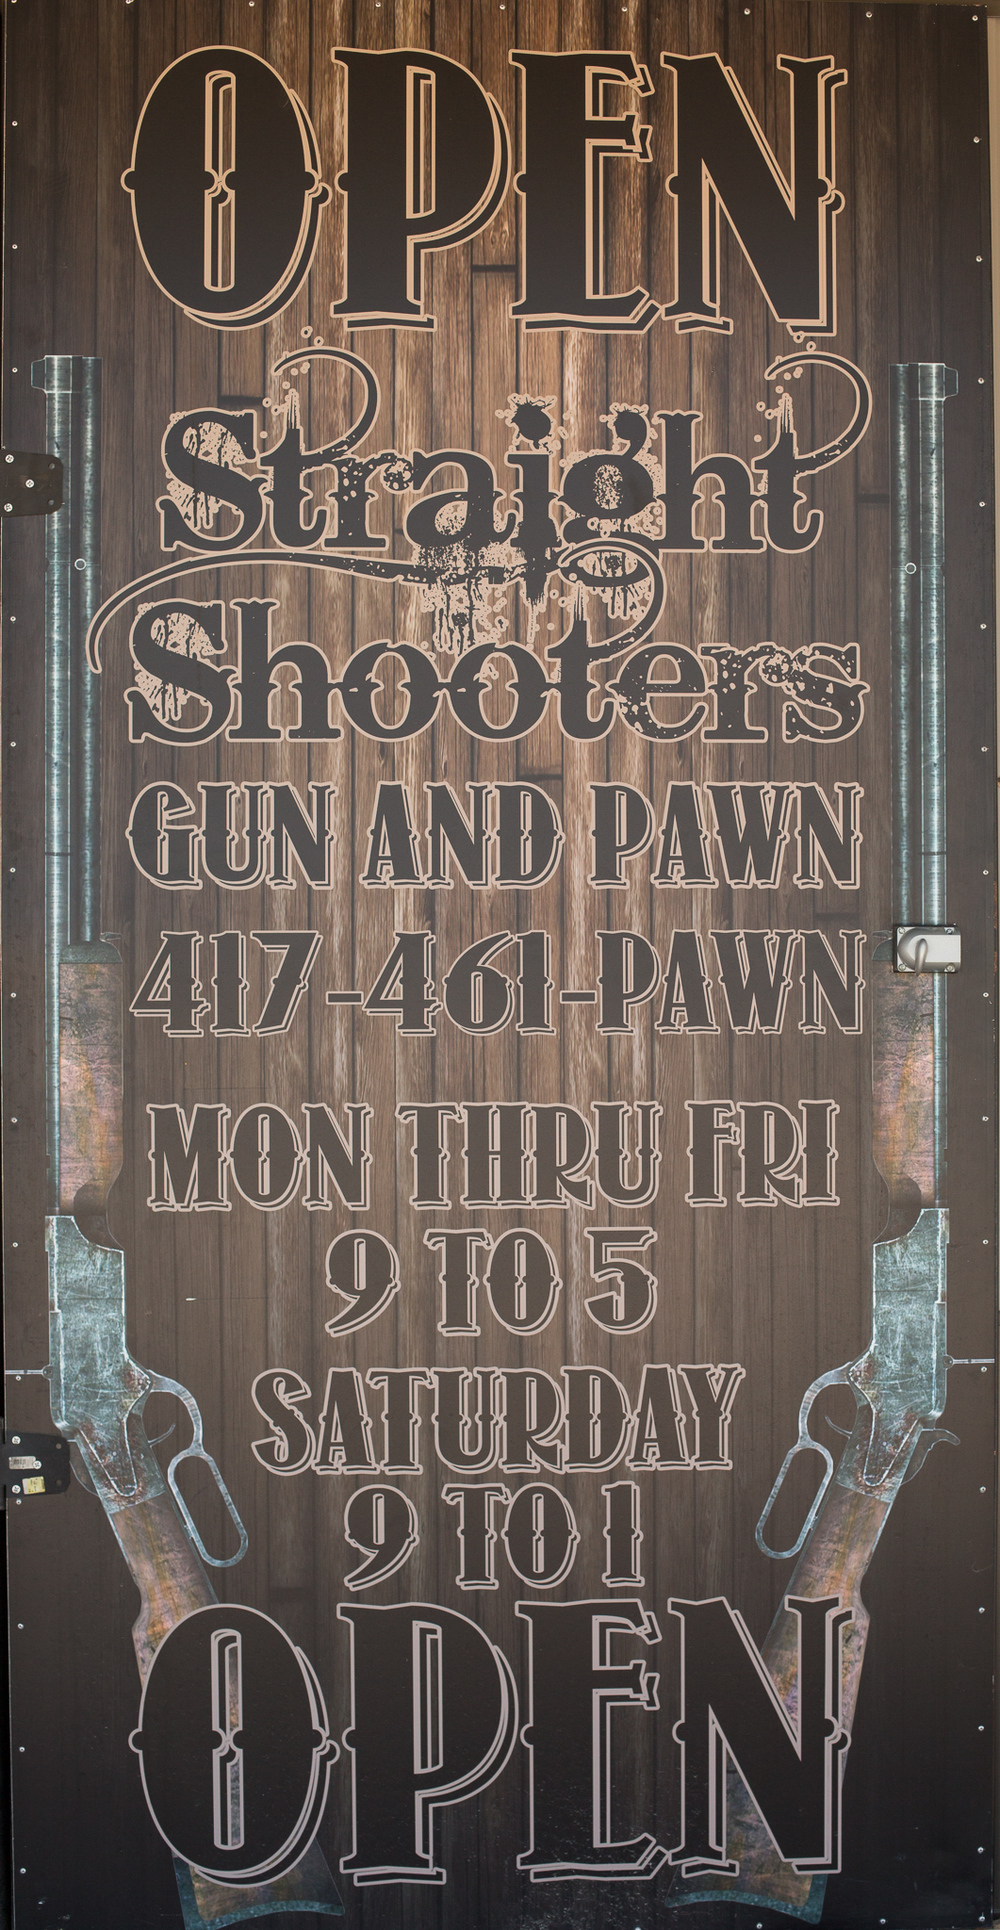 Straight Shooters Gun + Pawn Open